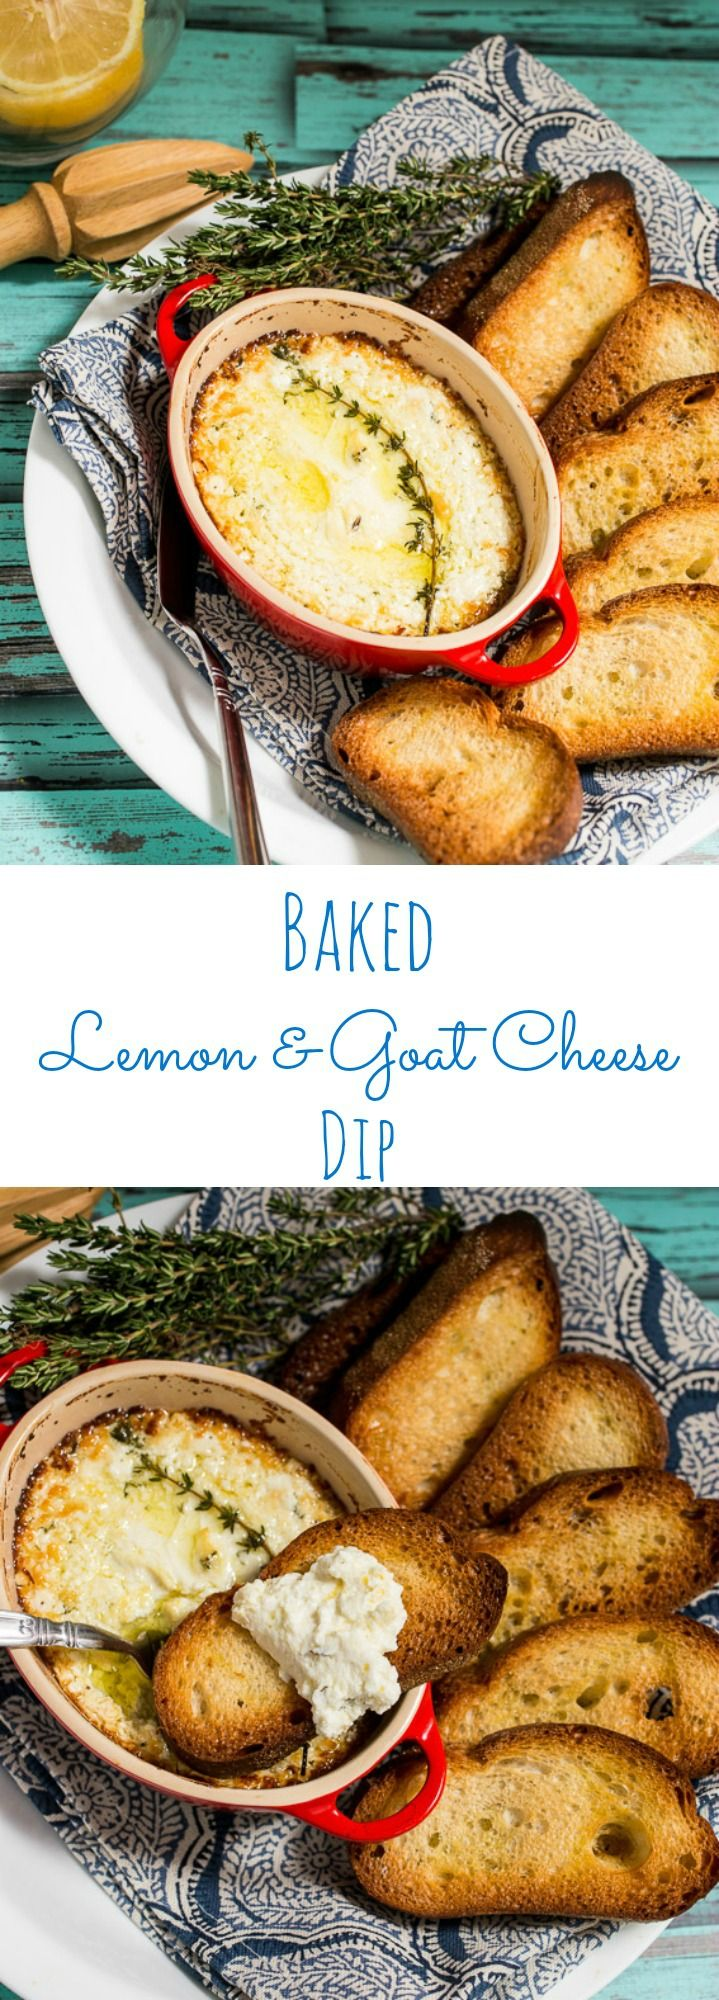 Baked Lemon and Goat Cheese Dip #SundaySupper| girlinthelittleredkitchen.com